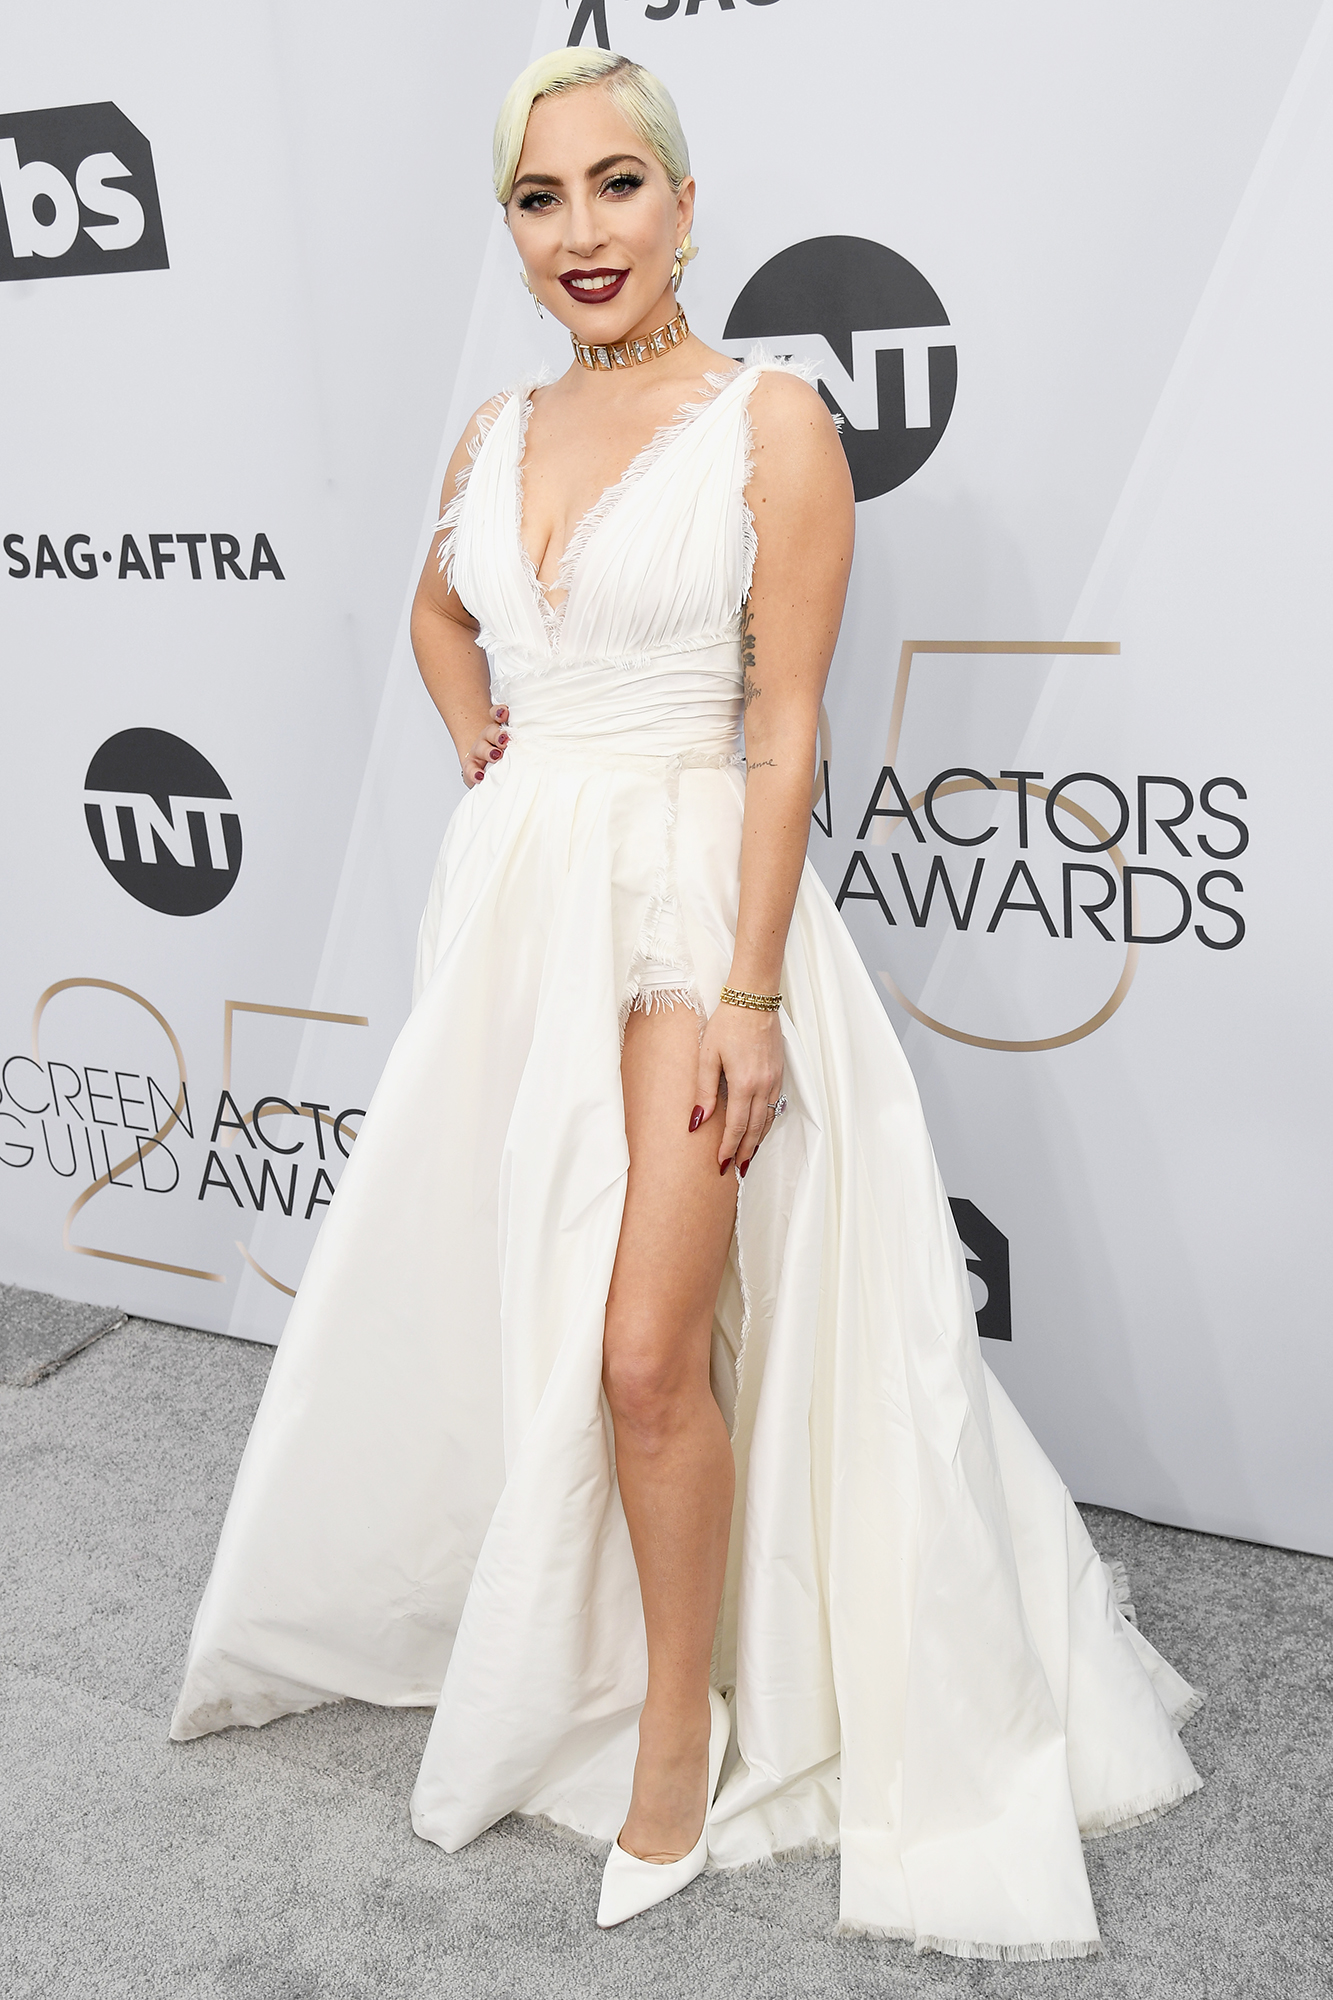 bcdd5cced SAG Awards 2019 Red Carpet Fashion: See Celeb Dresses, Gowns